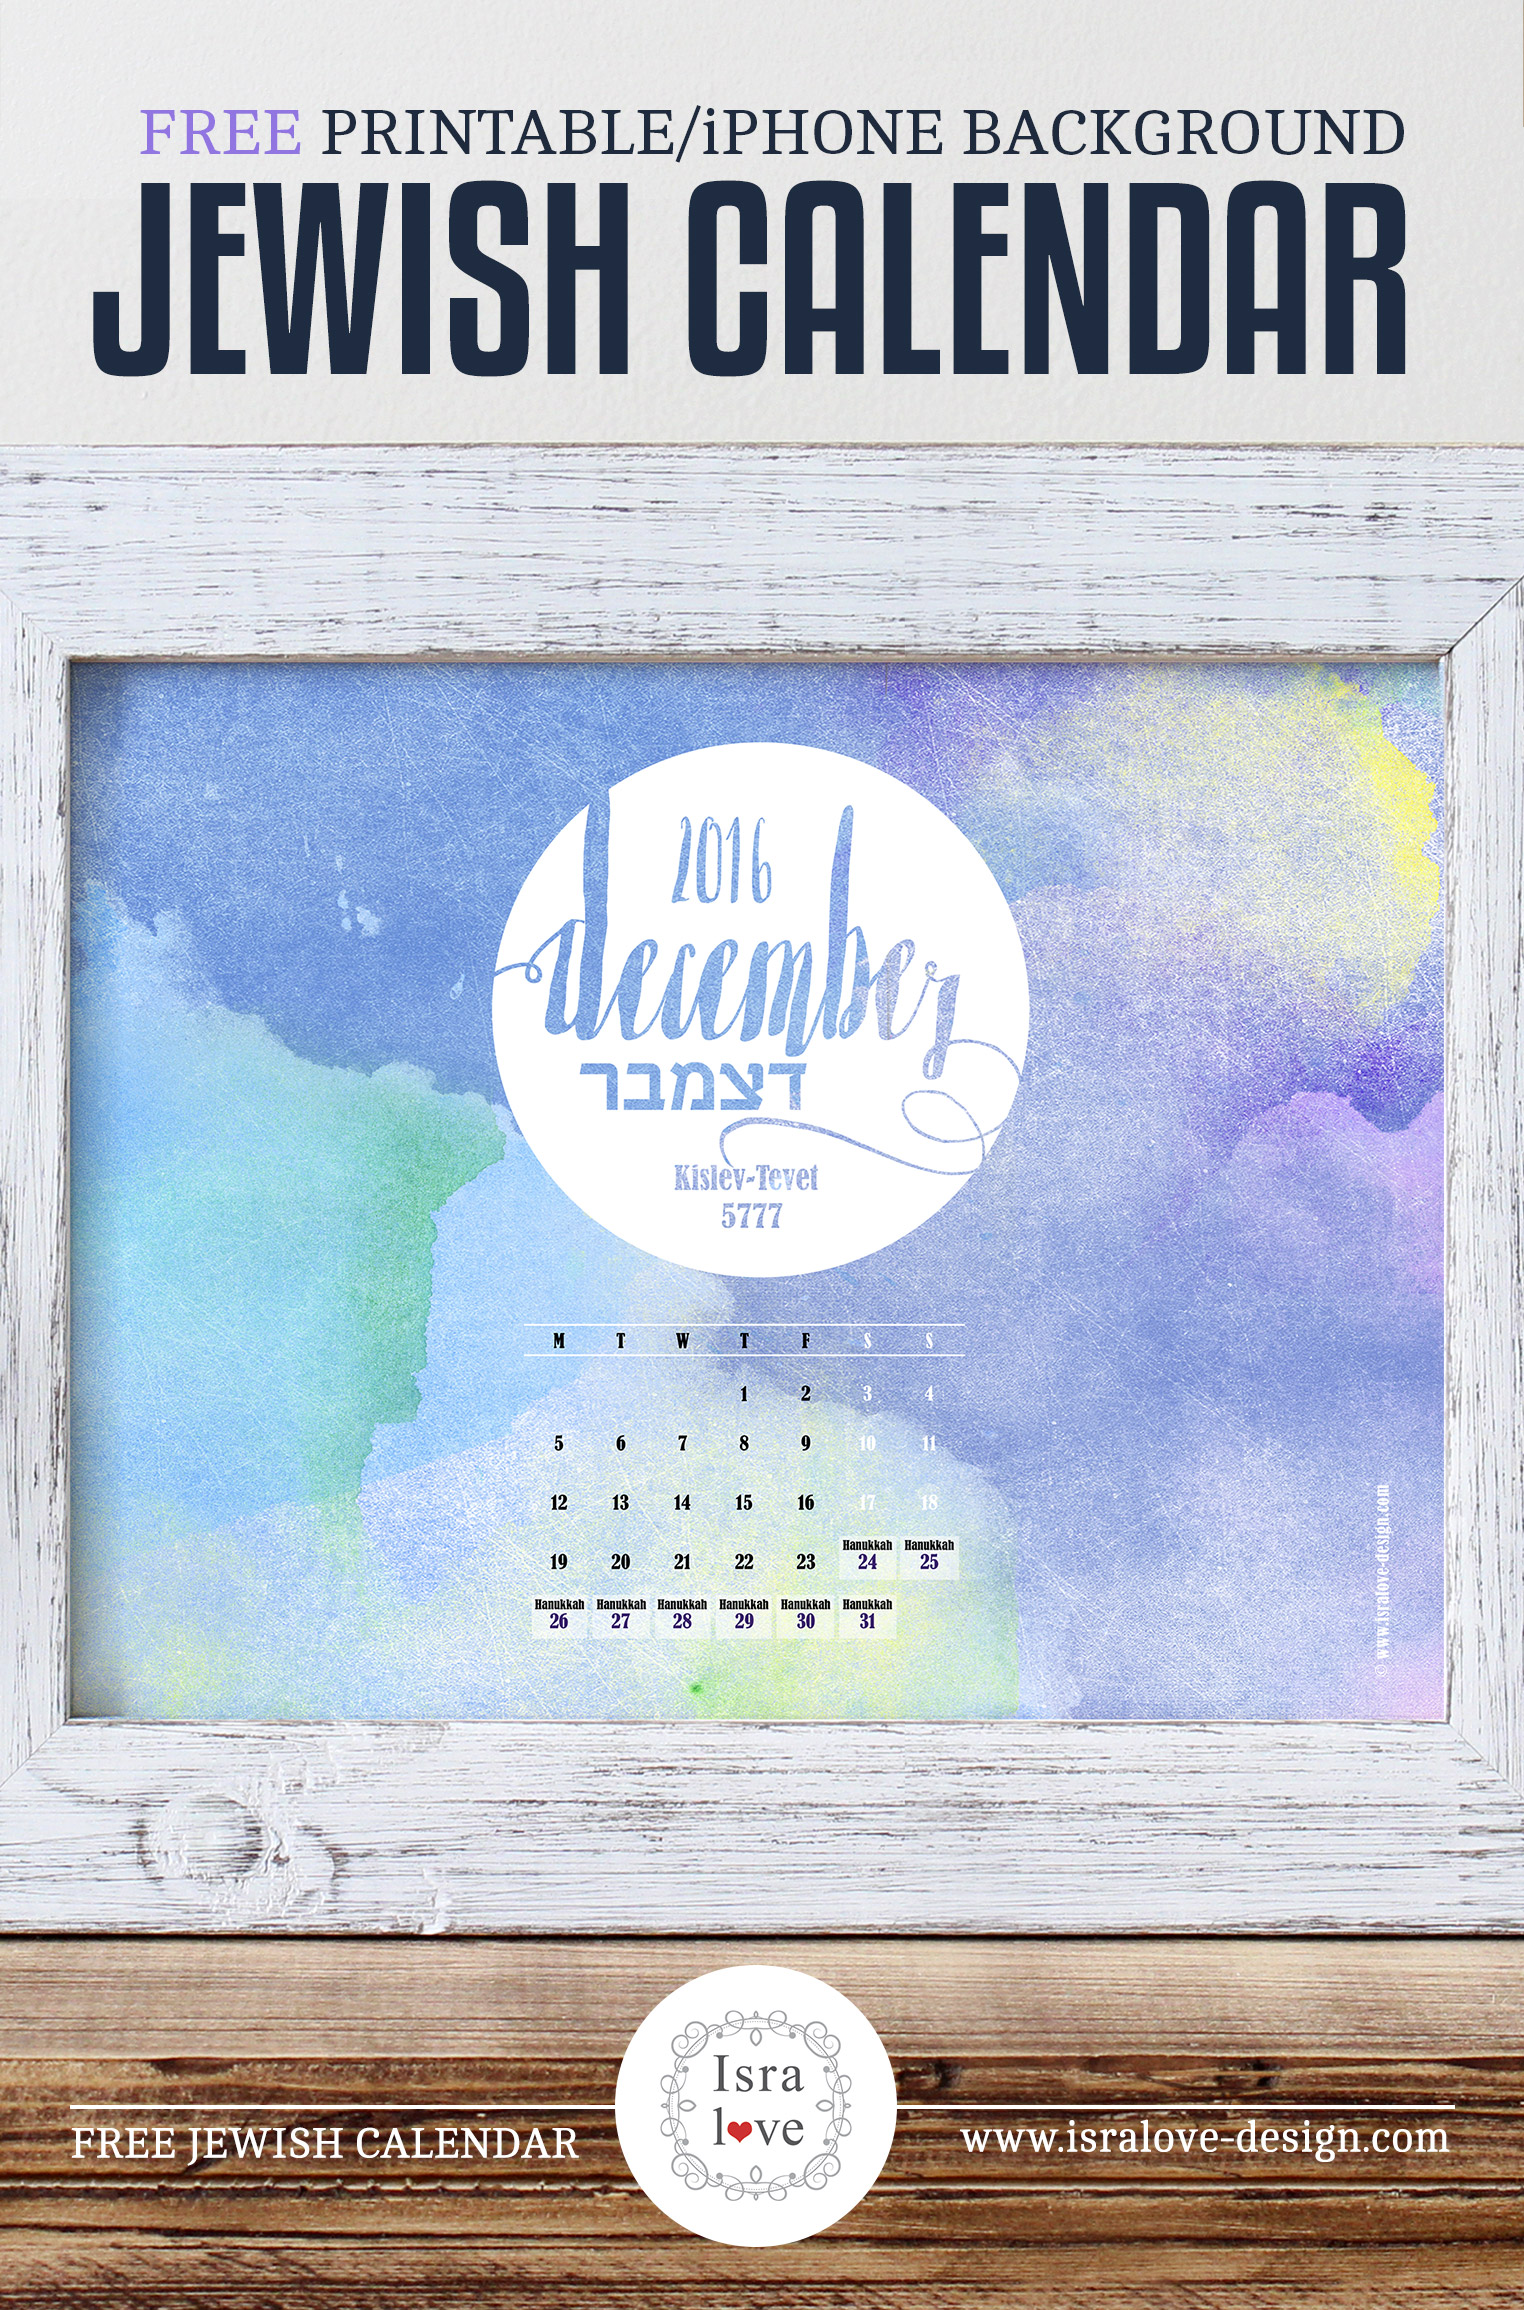 Jewish Calendar, free download, Chanukah / Kislev - Tevet 5777, including Jewish holidays. Free Download by Isralove, Fextival of lights